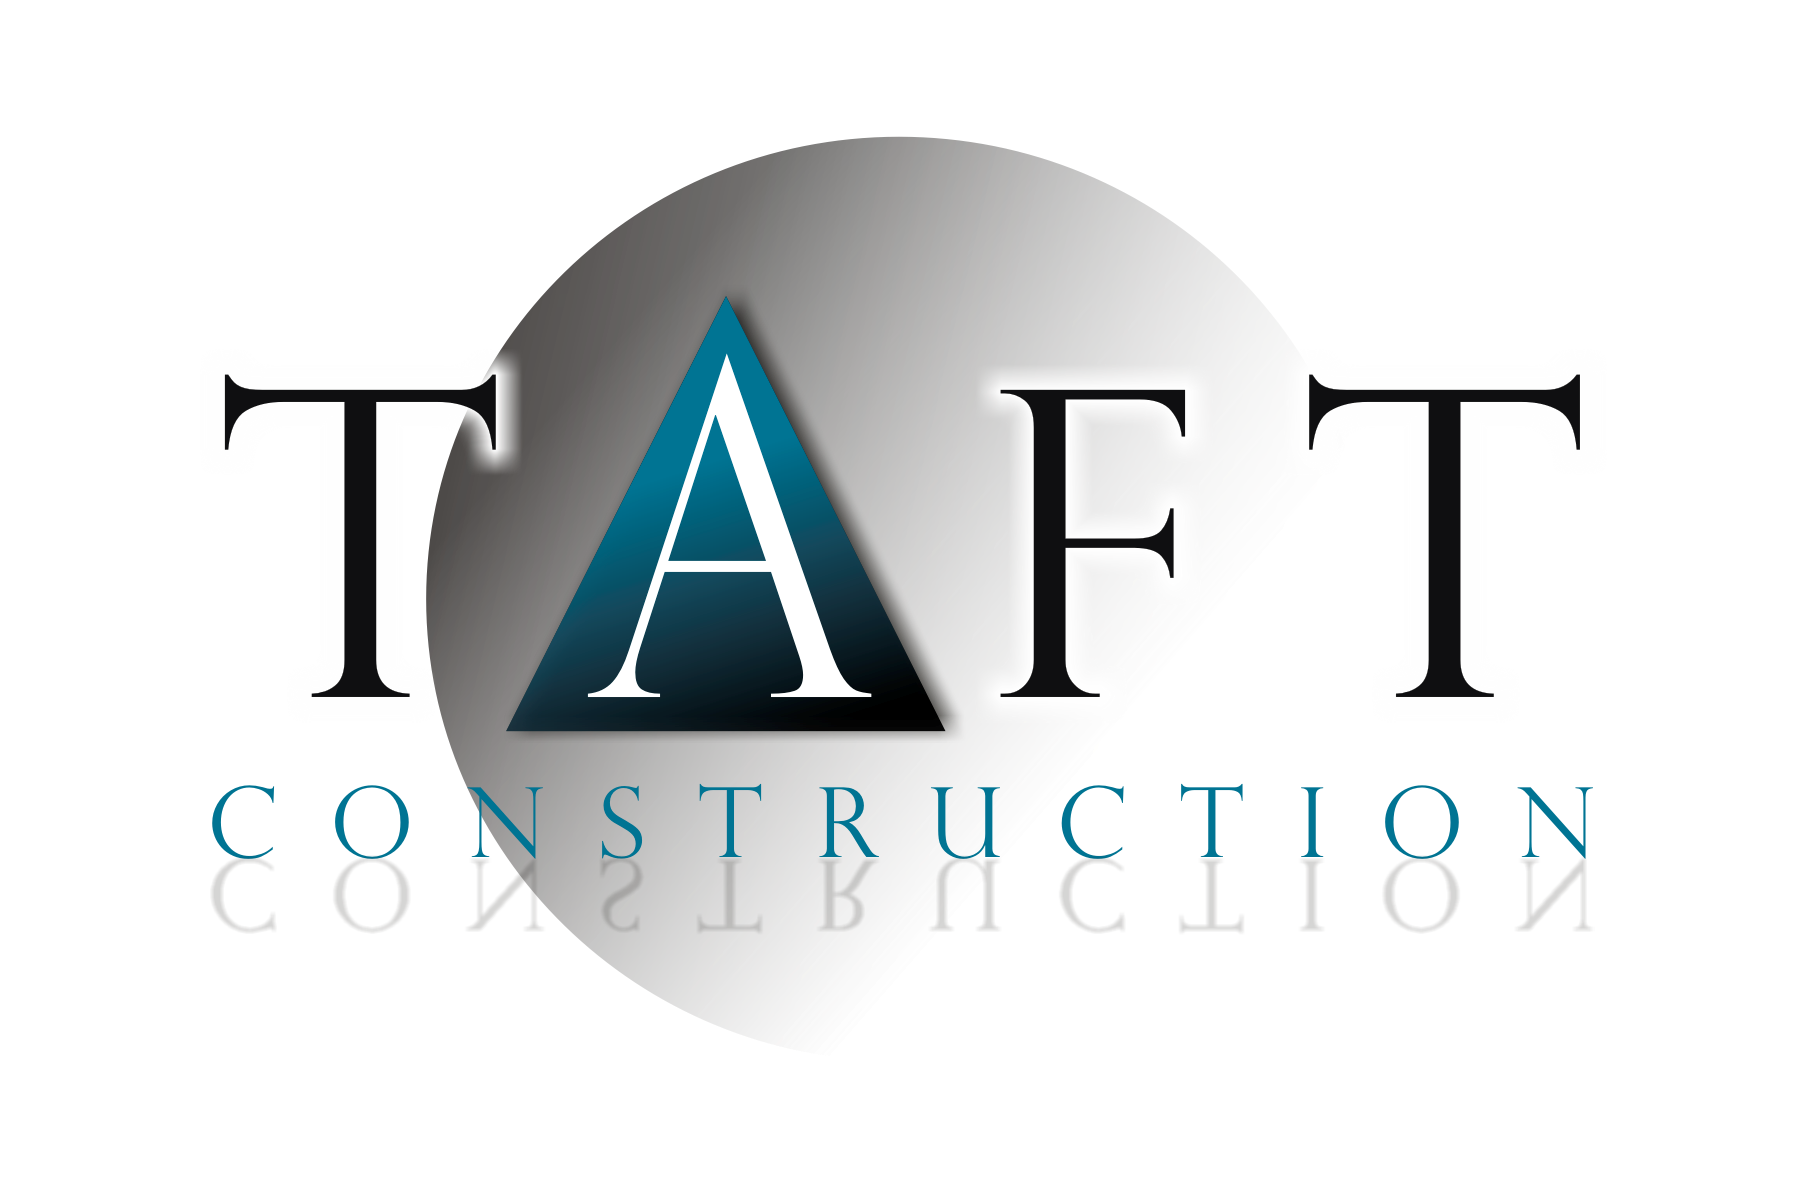 Taft Construction